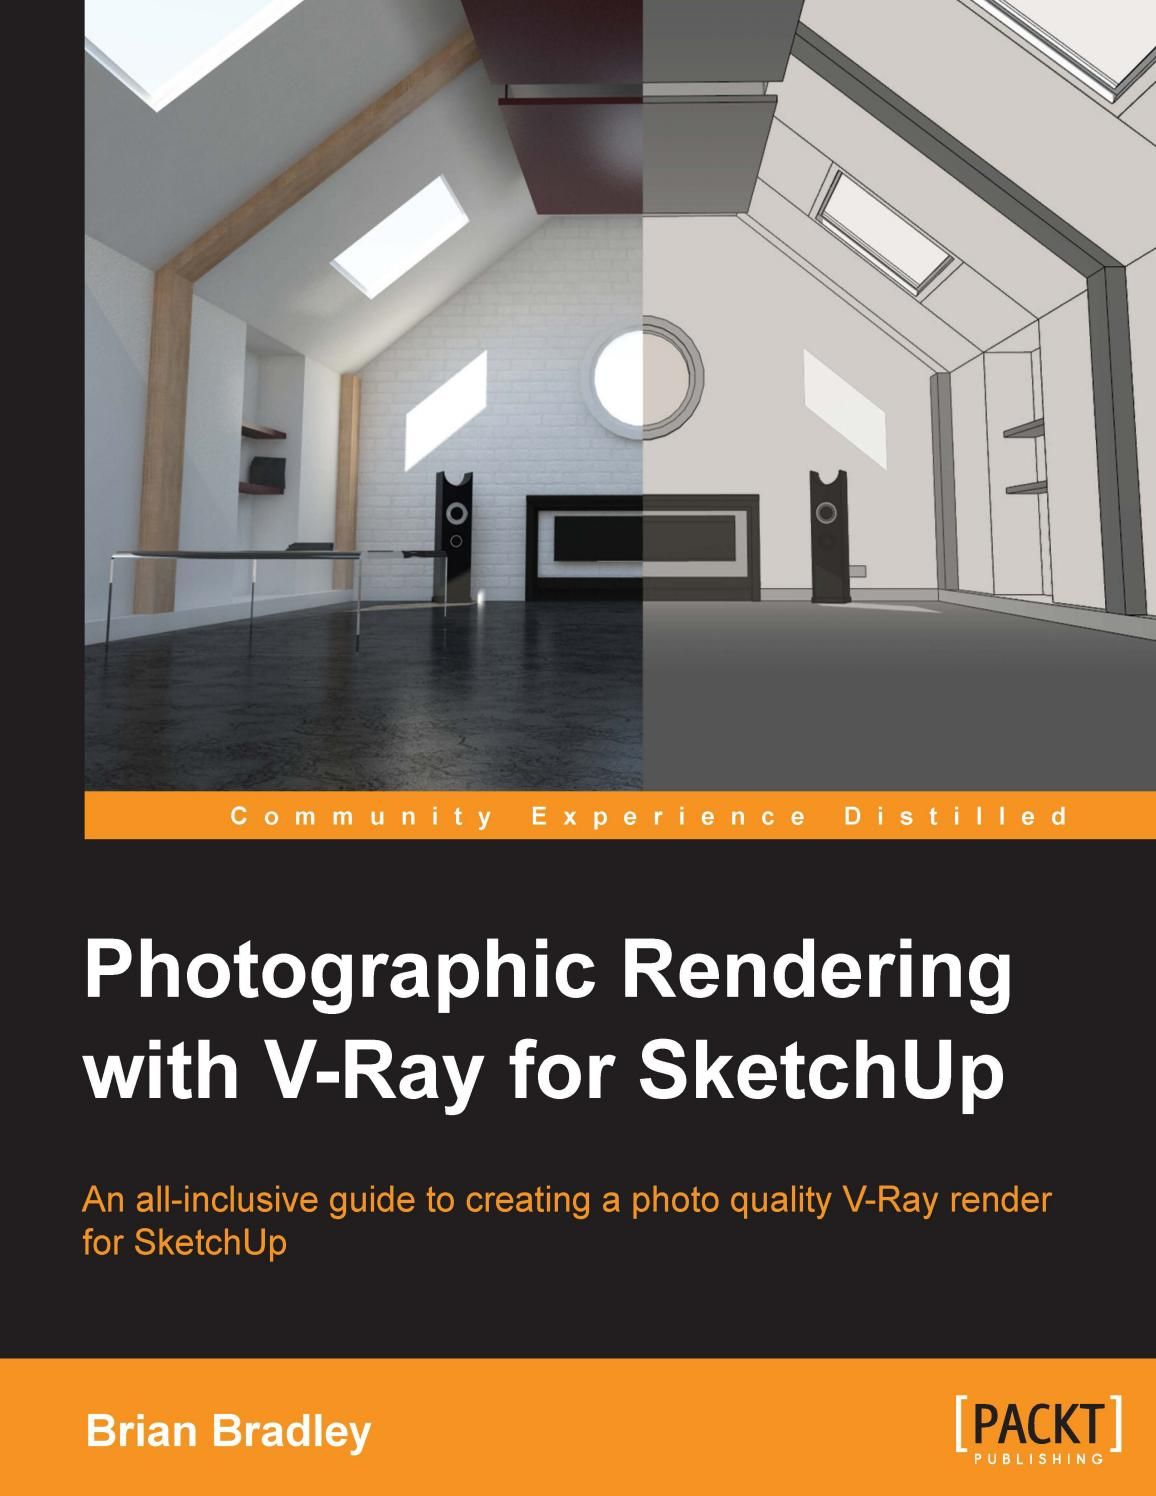 photographic rendering with vray for sketchup rh pinterest at Vray for SketchUp 2013 Vray for SketchUp Renderings